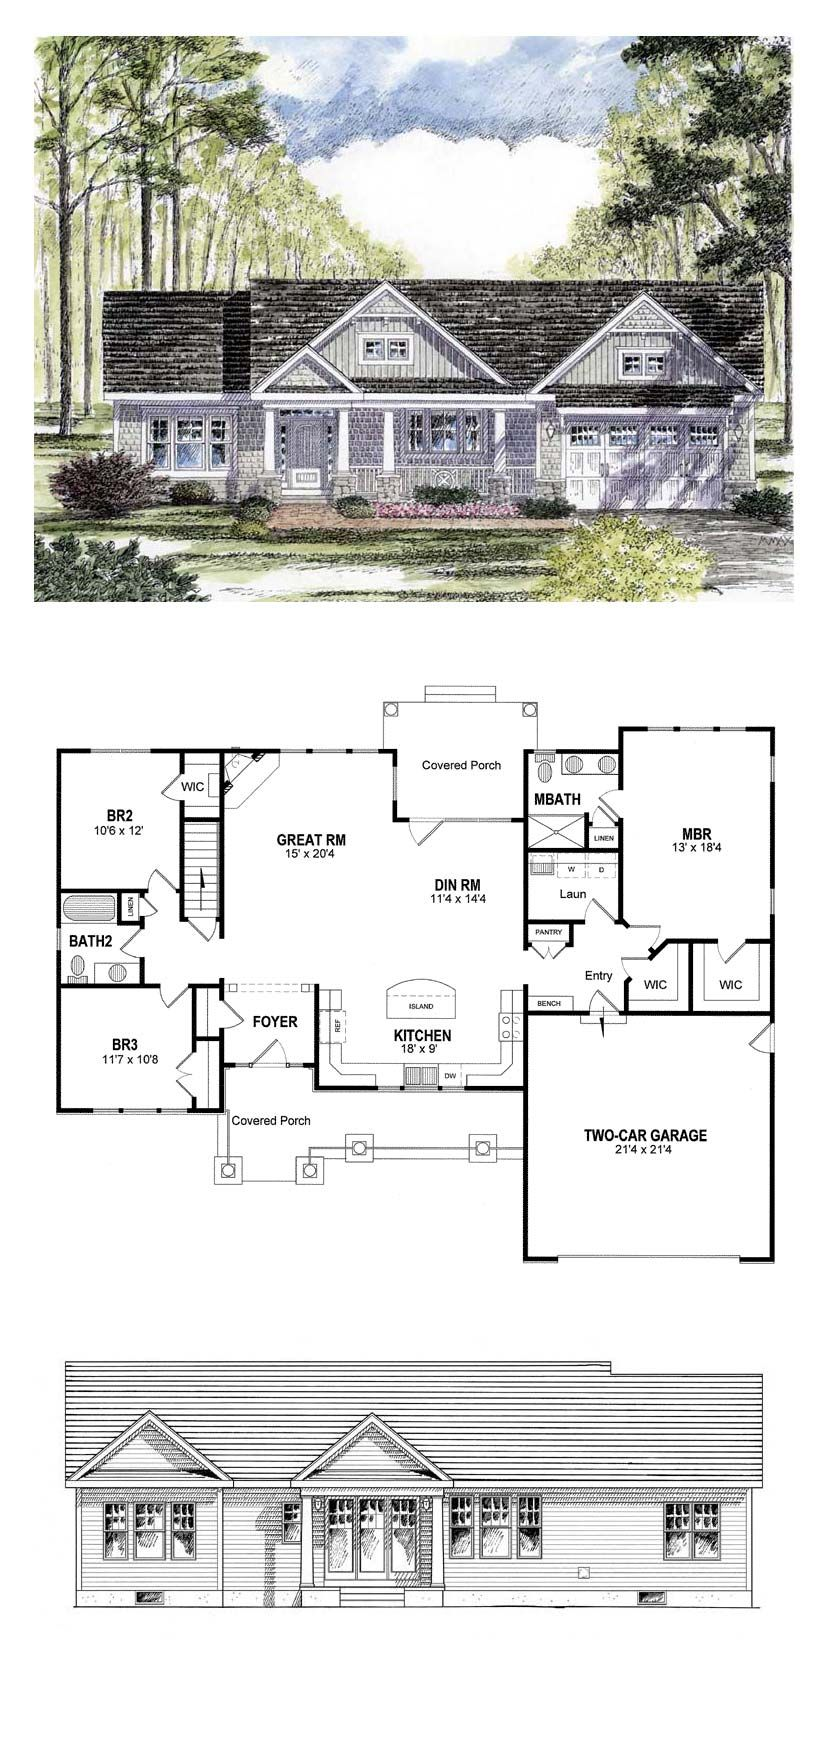 ranch house plan 94182 total living area 1720 sq ft 3 bedrooms rh pinterest com  3 bedroom house plans with a study